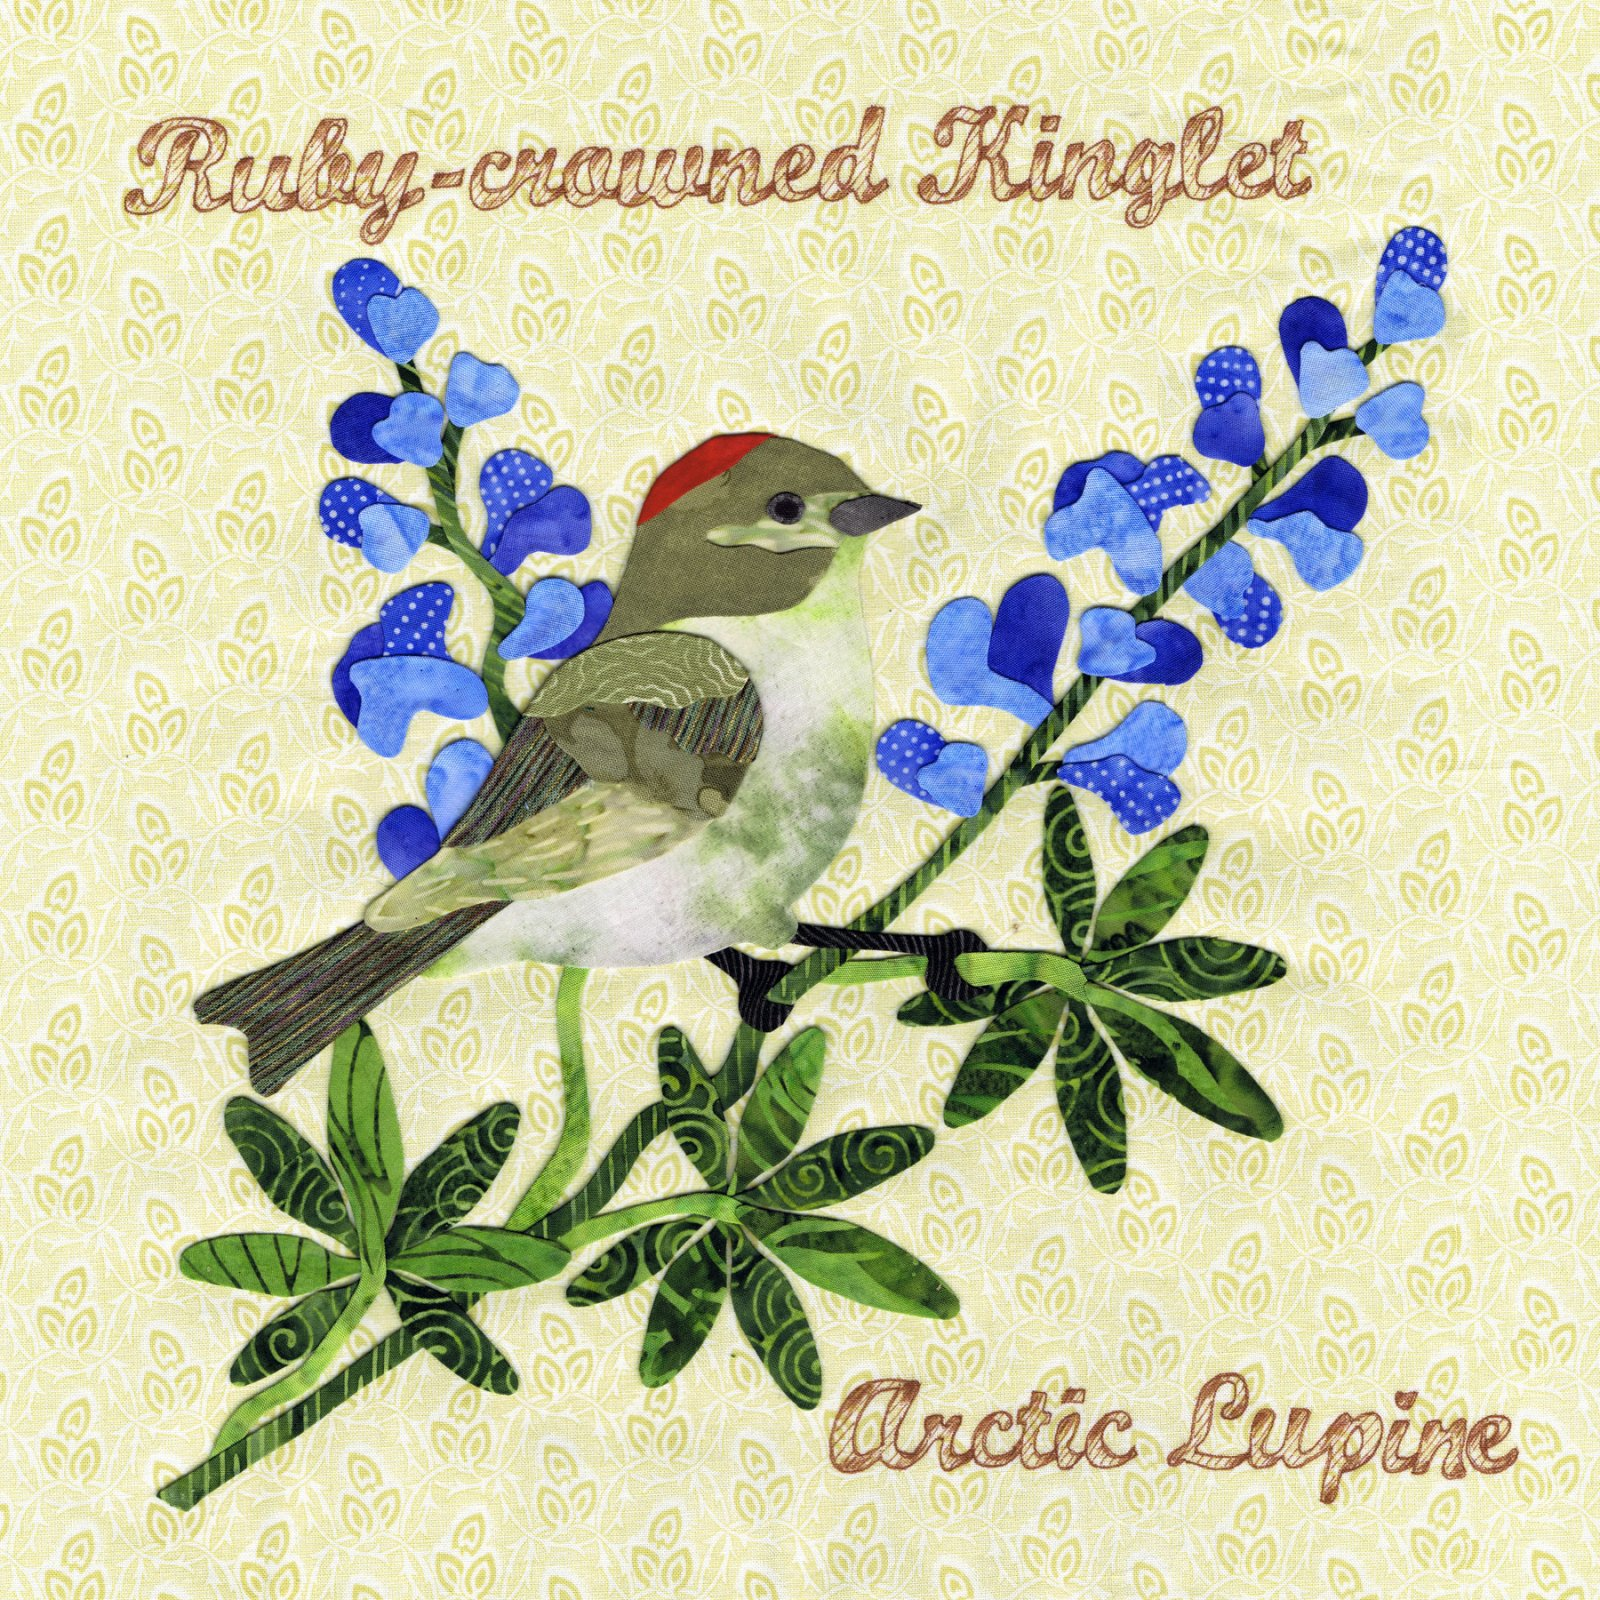 P3-1506 Ruby-crowned Kinglet & Arctic Lupine